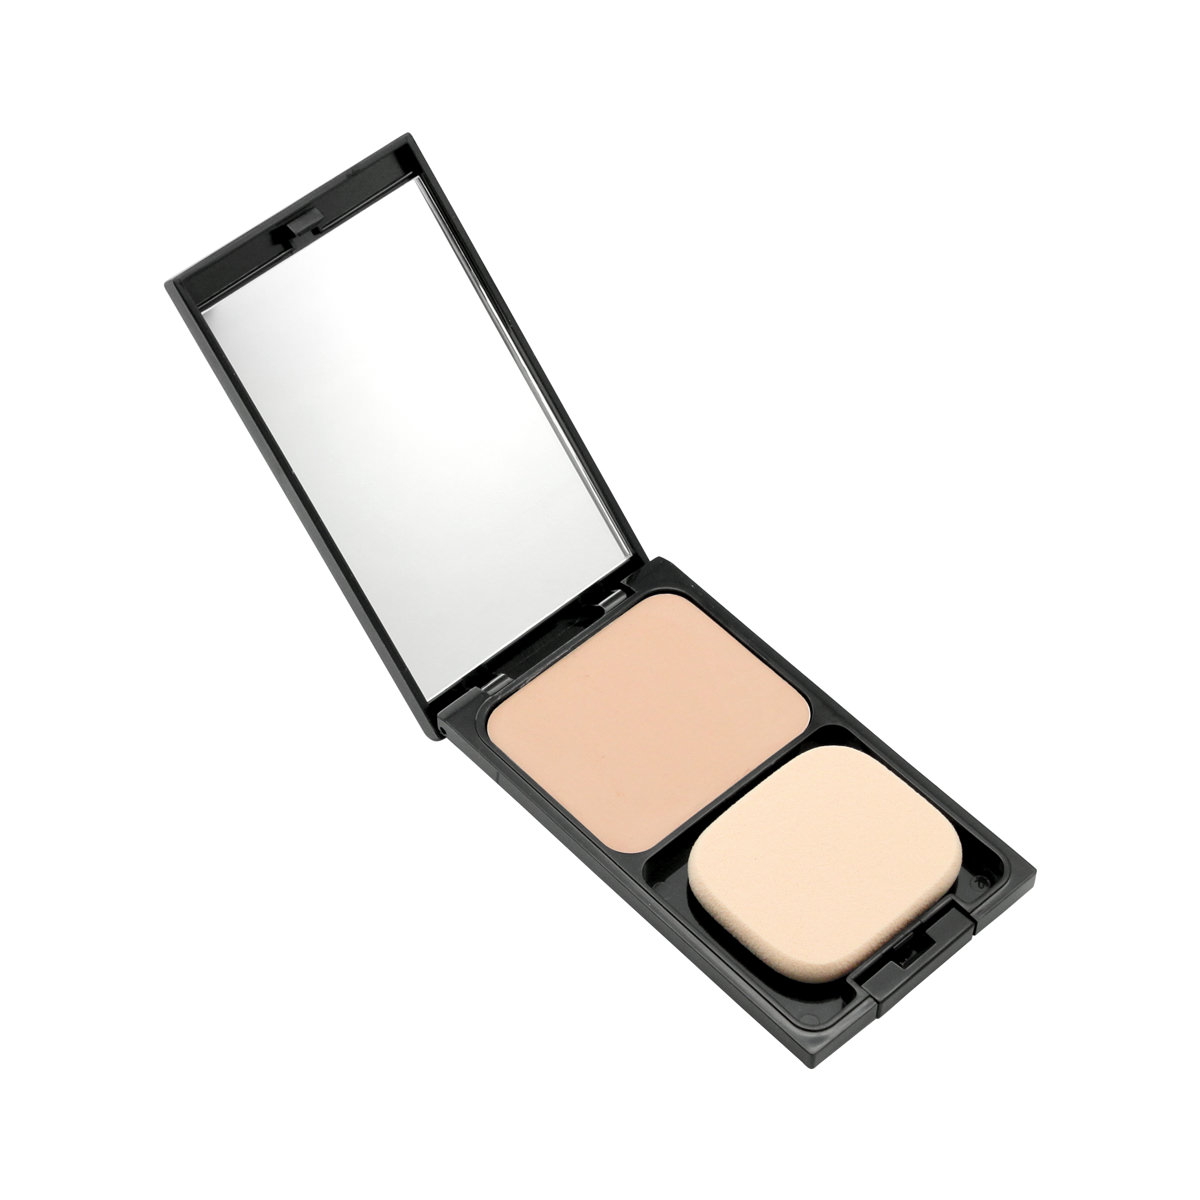 Revlon-Natural-Finish-Powdery-Foundation-03-Peach-Edited-sfw